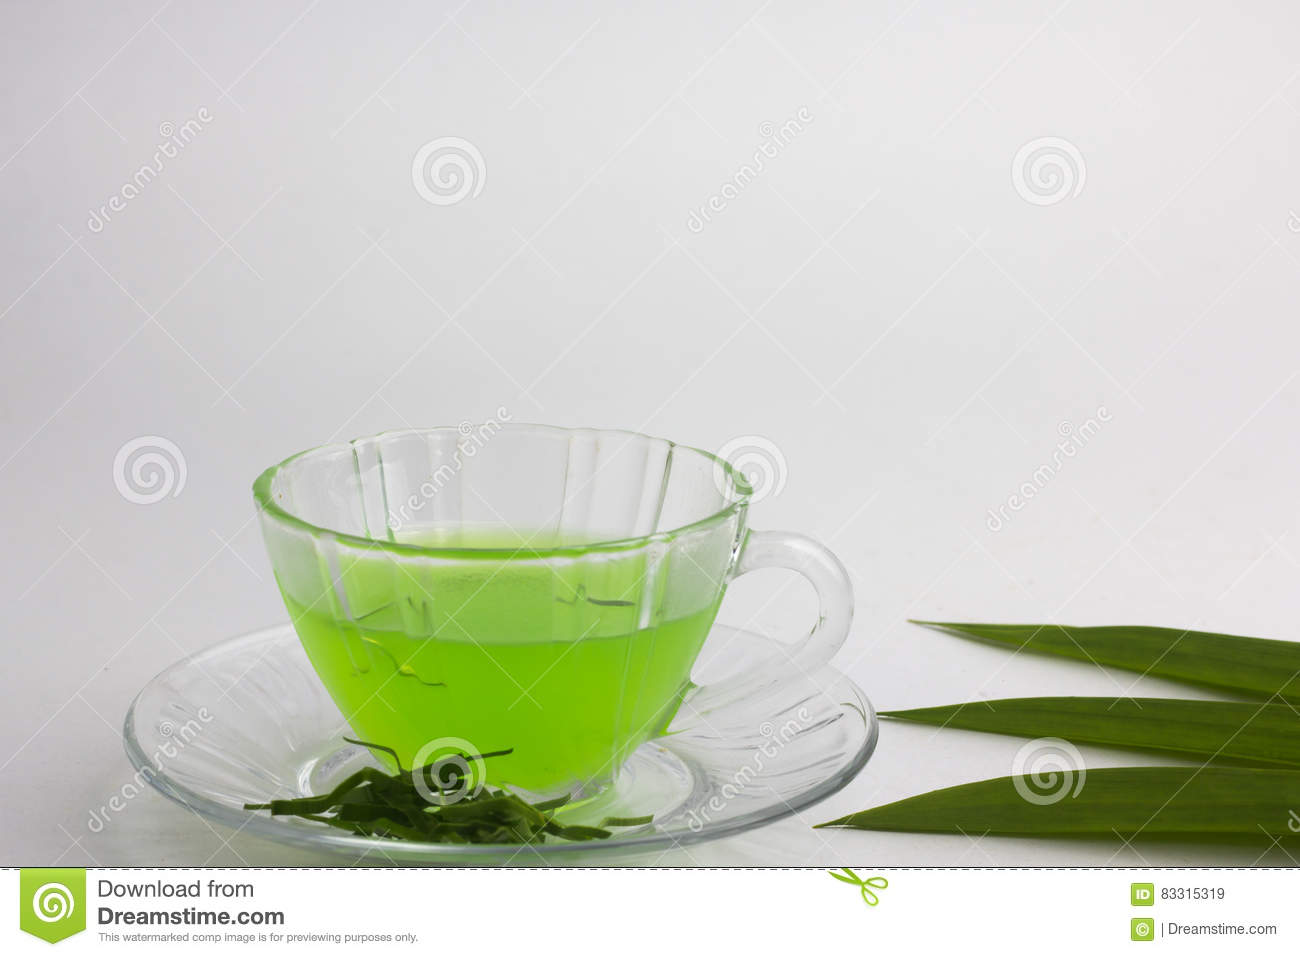 Glass of cold Pandan juice - healthy food against wood,With pan